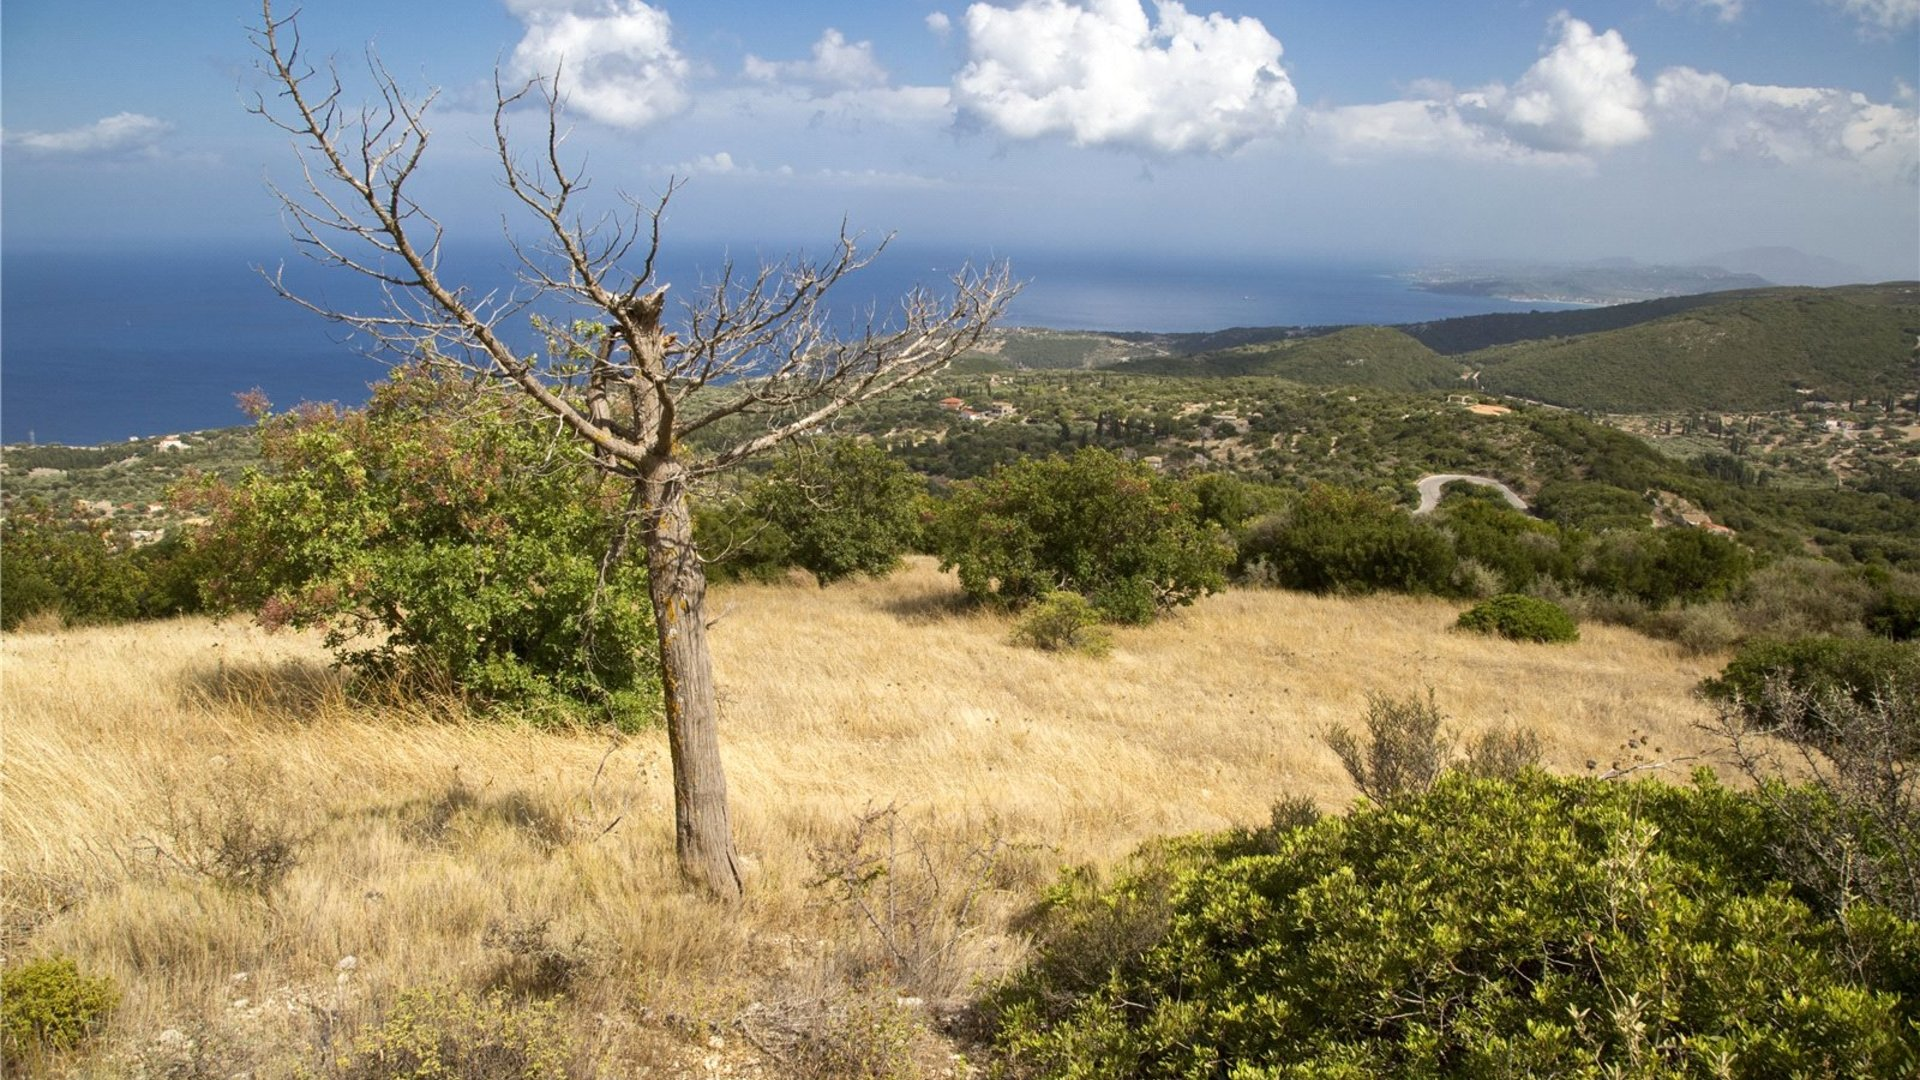 Upper Megaloni Plot, Zakynthos, Greece